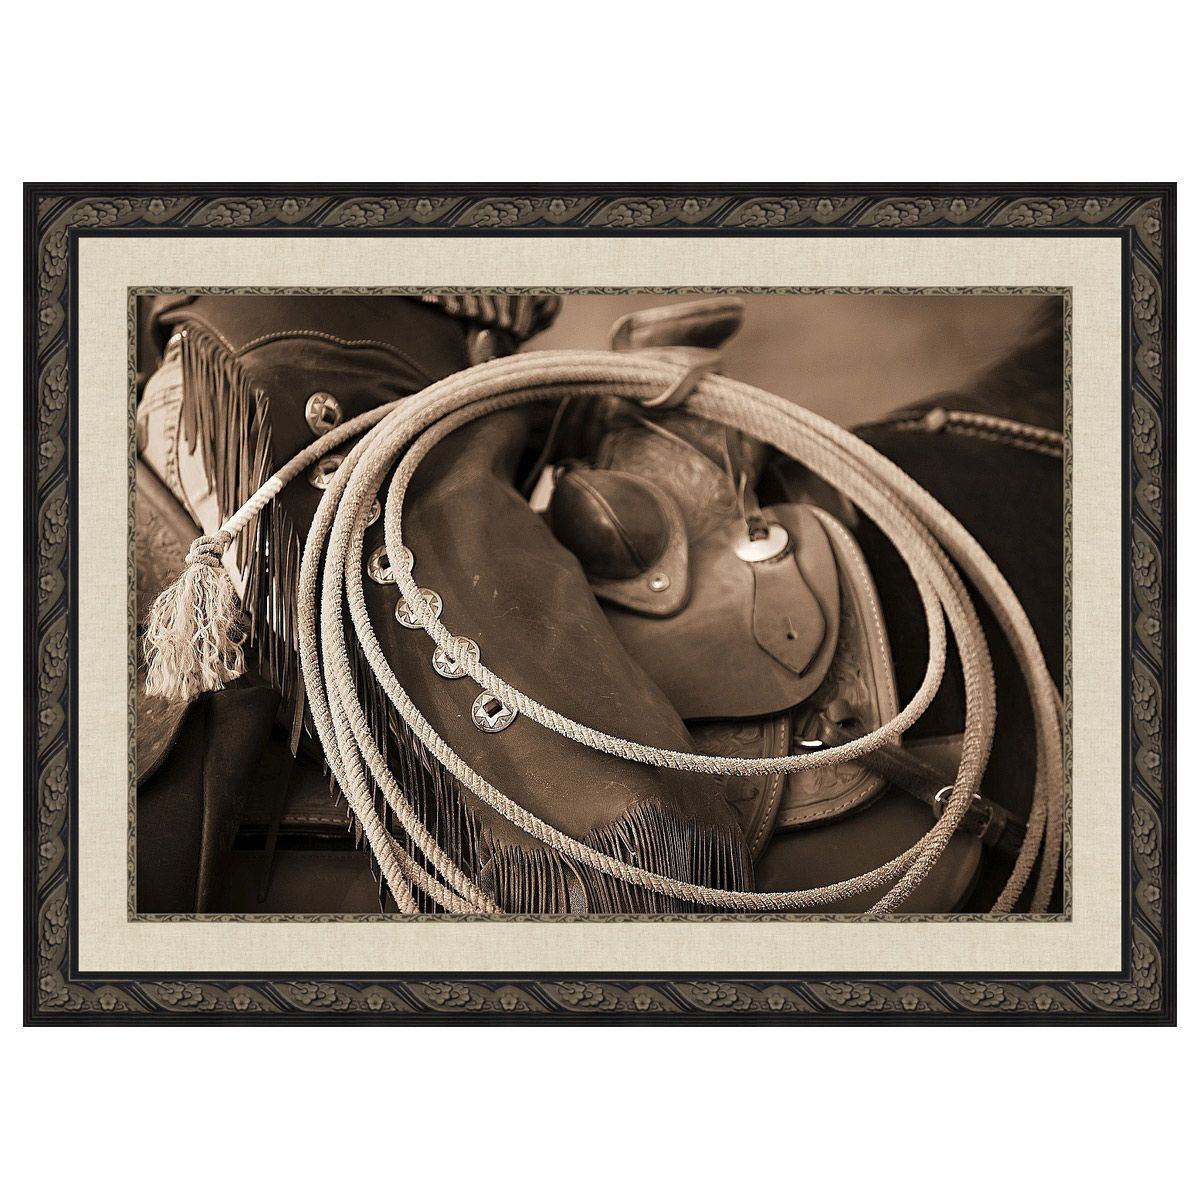 Horseback Cowgirl's Lasso Framed Canvas